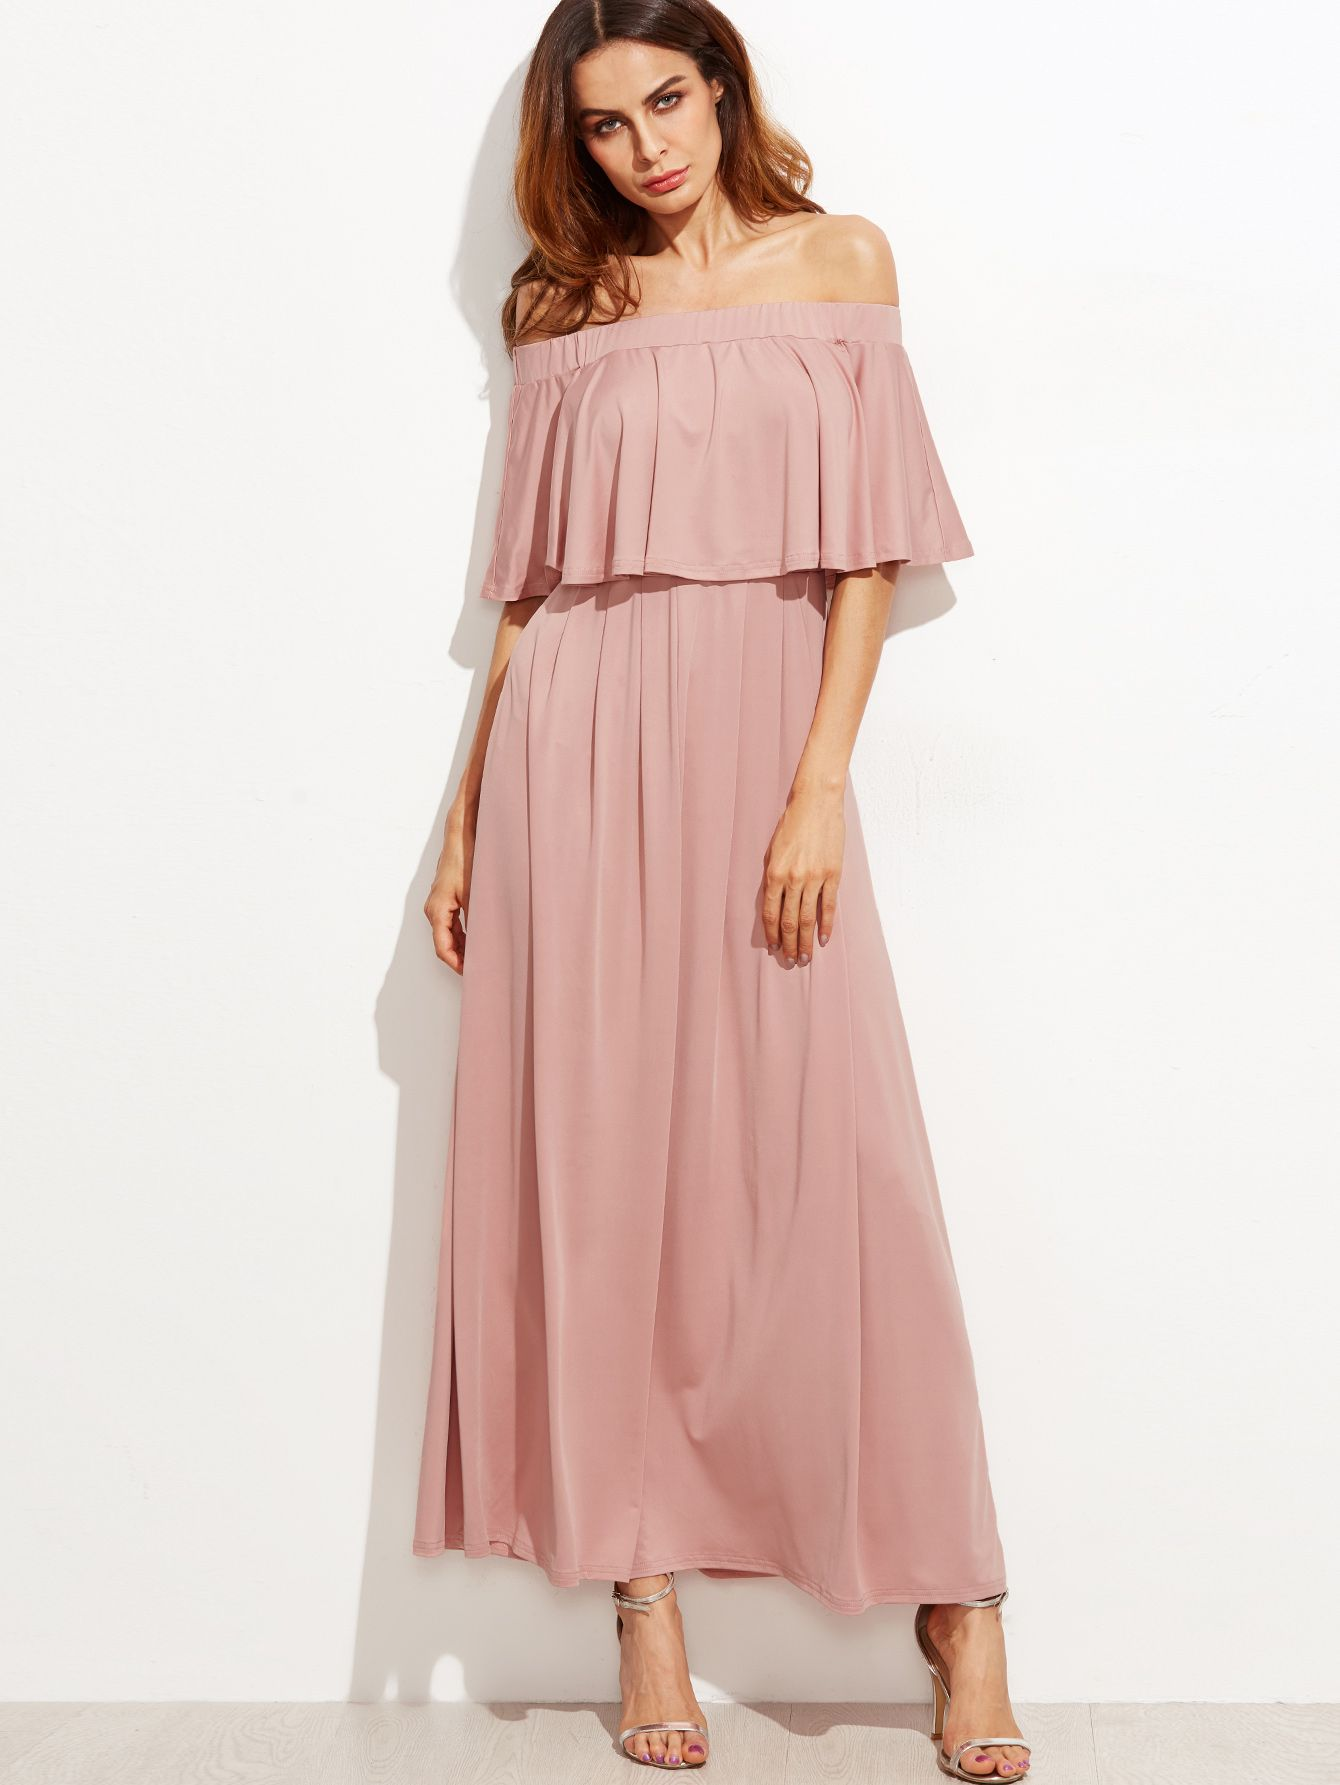 1ab1a0642b Shop Pink Off The Shoulder Layered Ruffle Dress online. SheIn offers Pink  Off The Shoulder Layered Ruffle Dress & more to fit your fashionable needs.